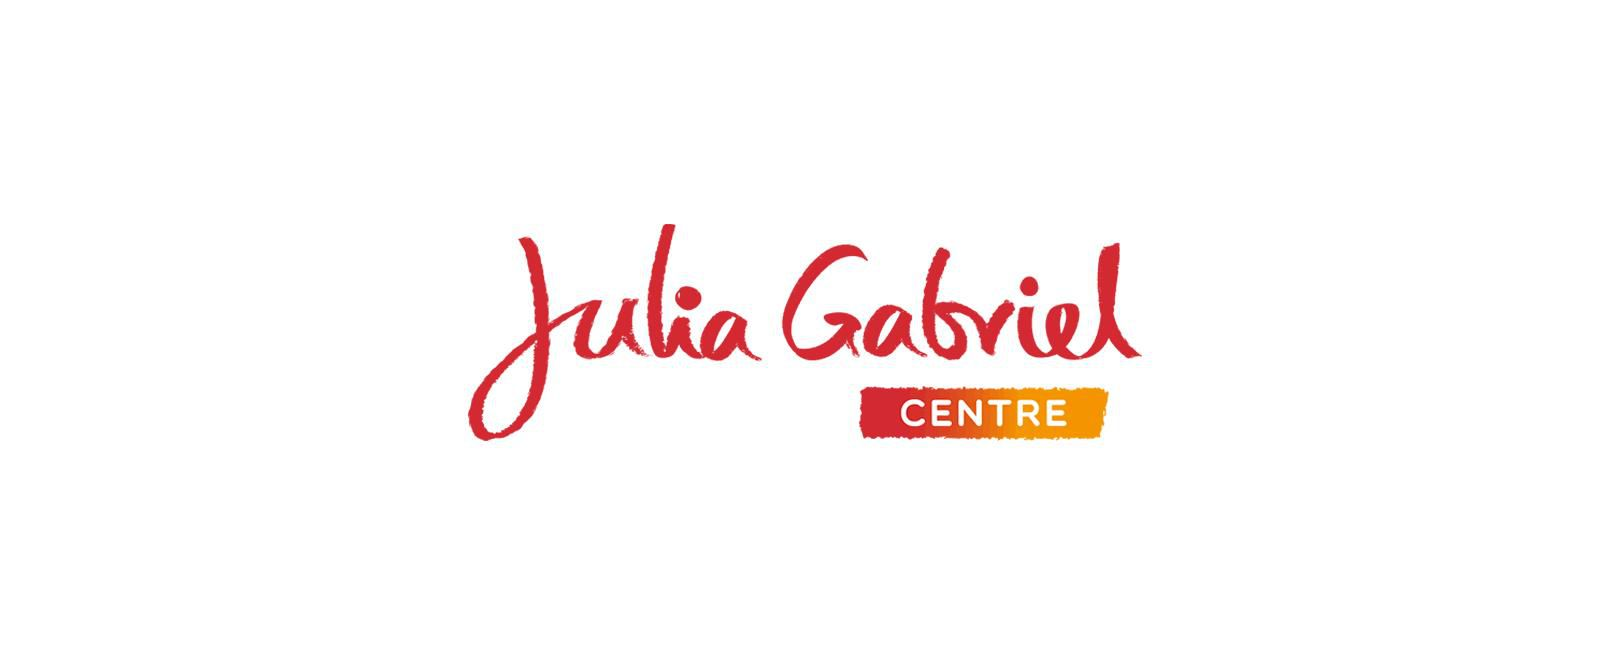 Language Arts And Performance Programmes For Children From 6 Months To 18 Years Julia Gabriel Centre 04 00 Forum 583 Orchard Road Singapore 238884